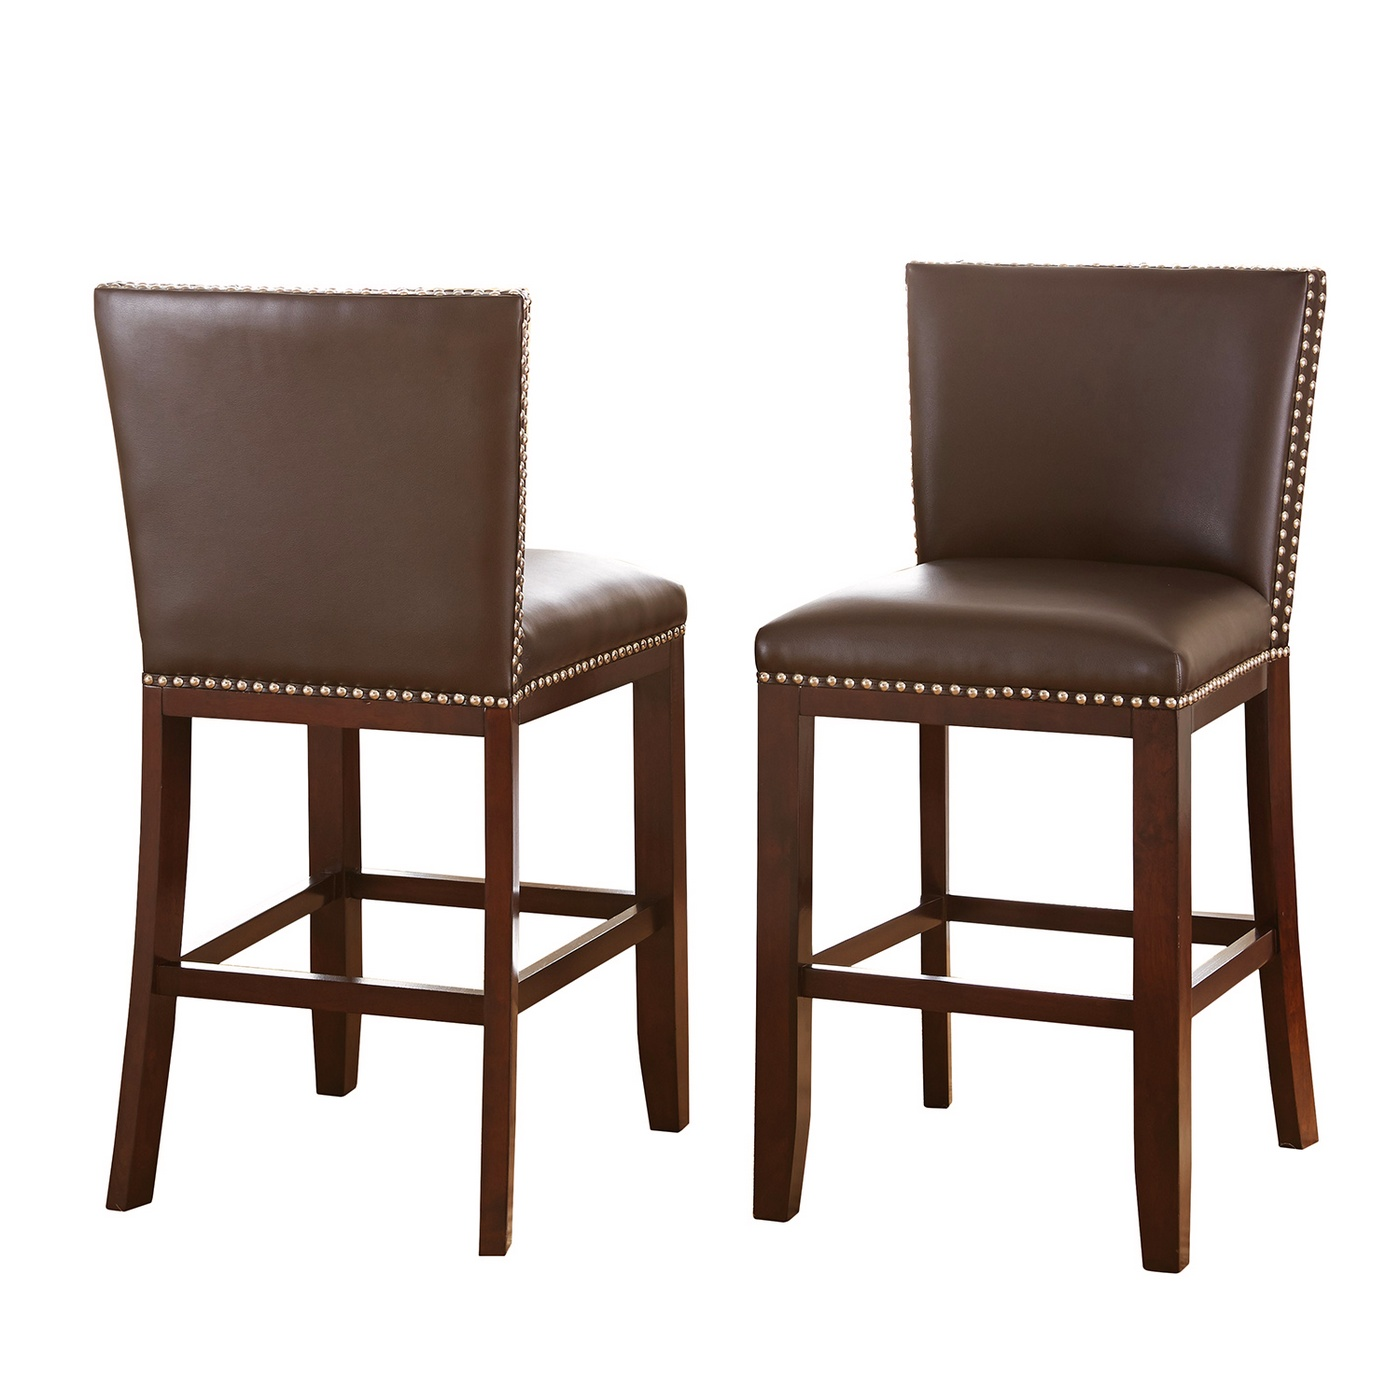 chair and stool heights gold sequin covers set of 2 tiffany modern hardwood brown vinyl counter